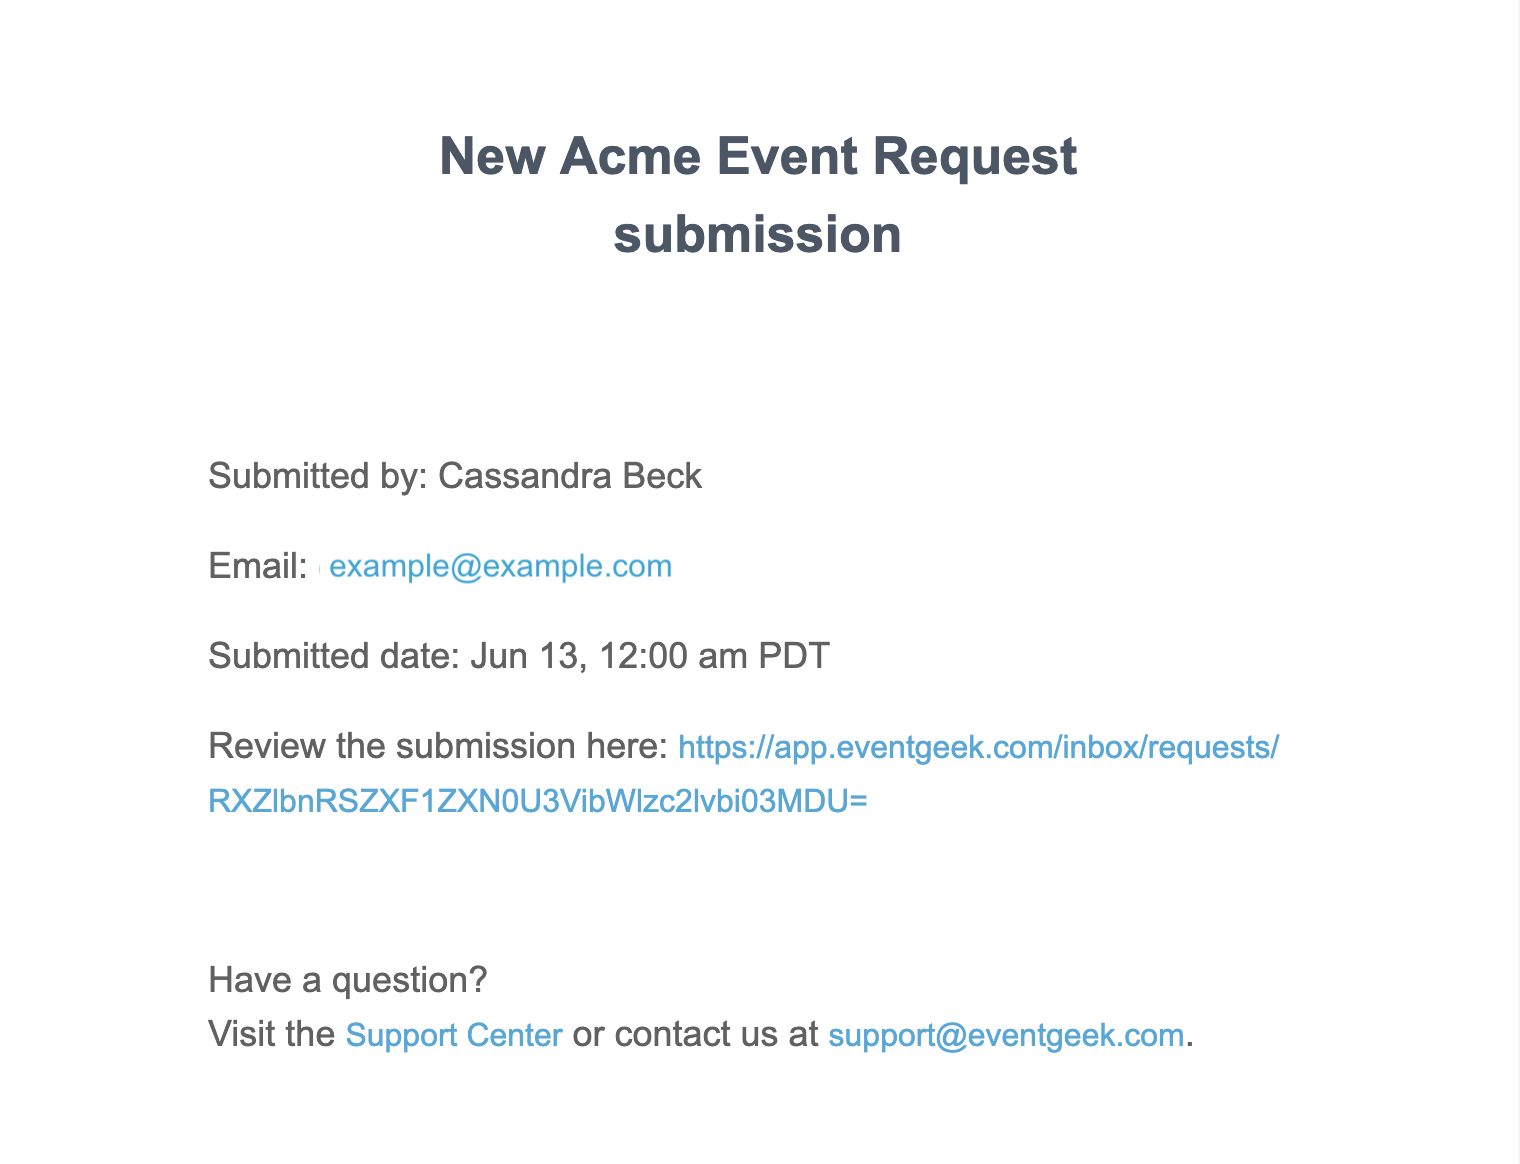 How do I review and approve Event Requests? - EventGeek